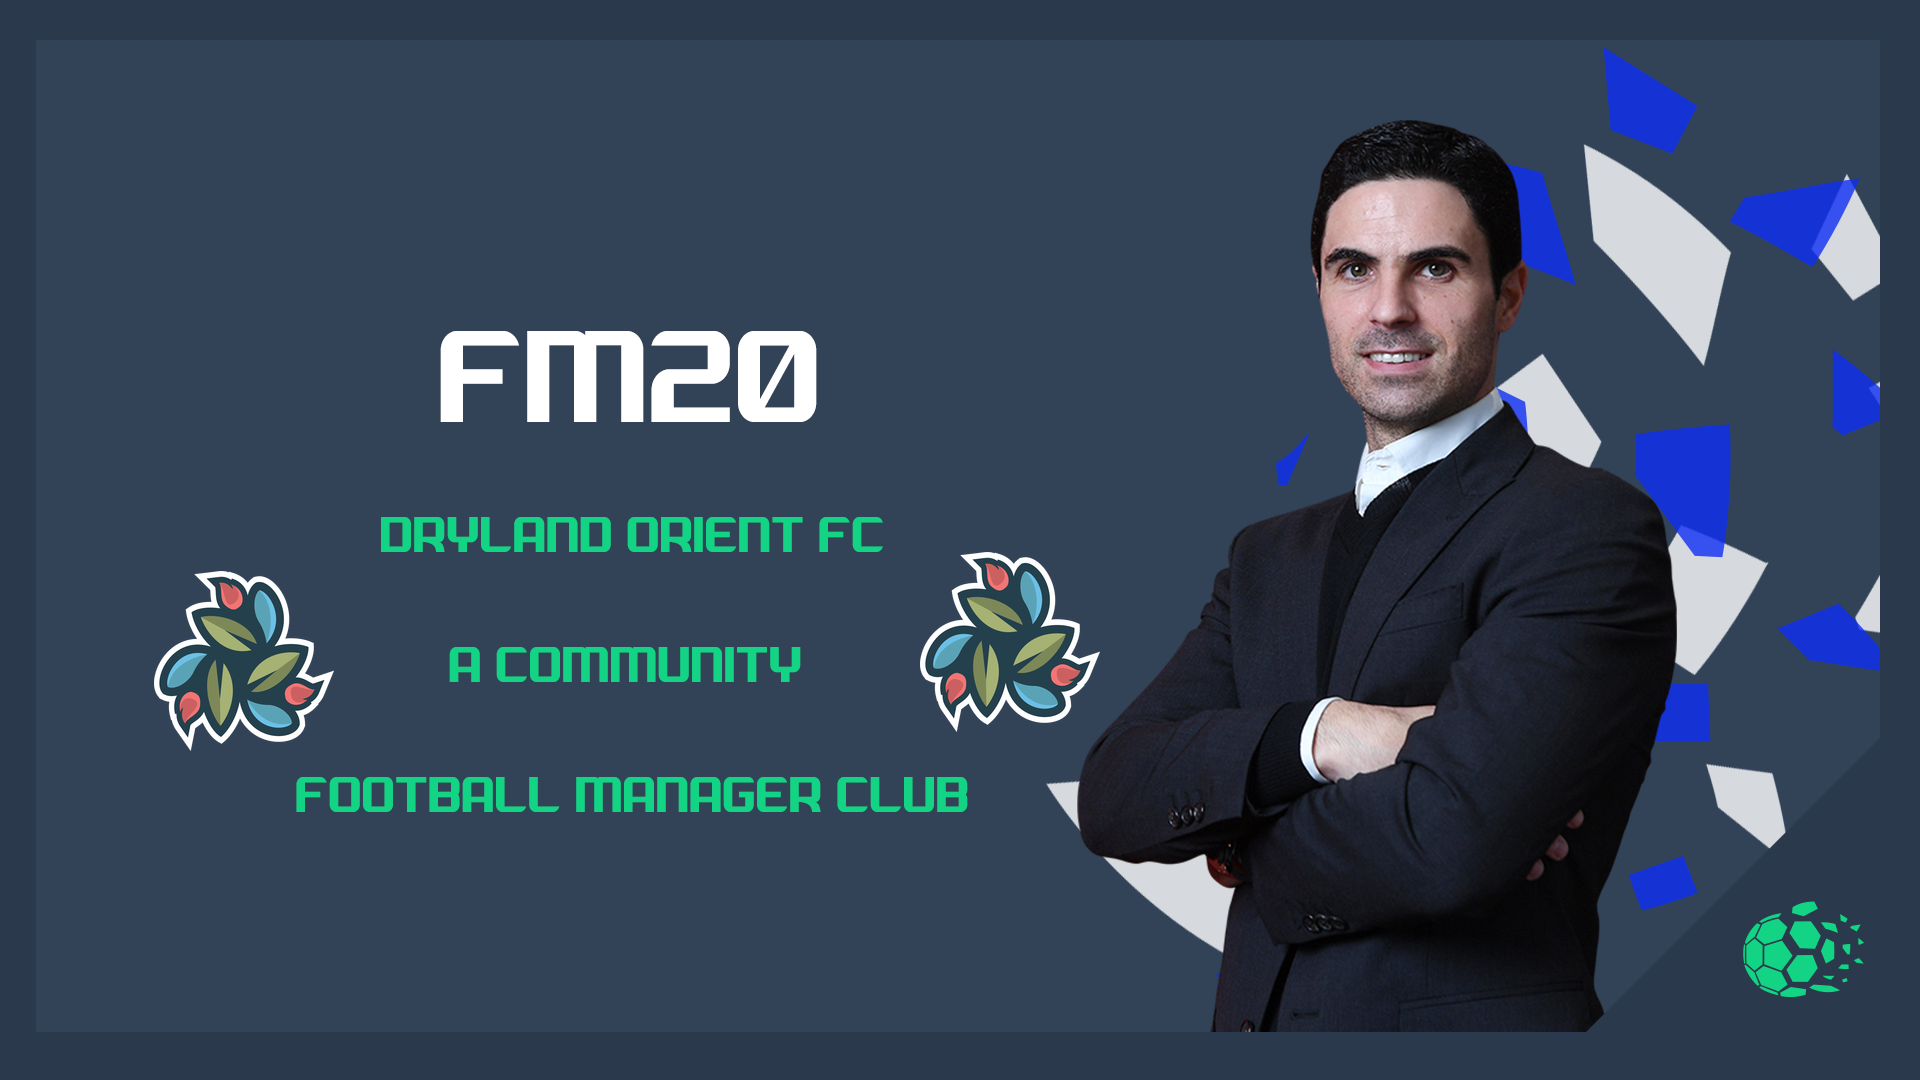 """""""FM20Dryland Orient F.C - A Community Football Manager Club"""" feature image"""